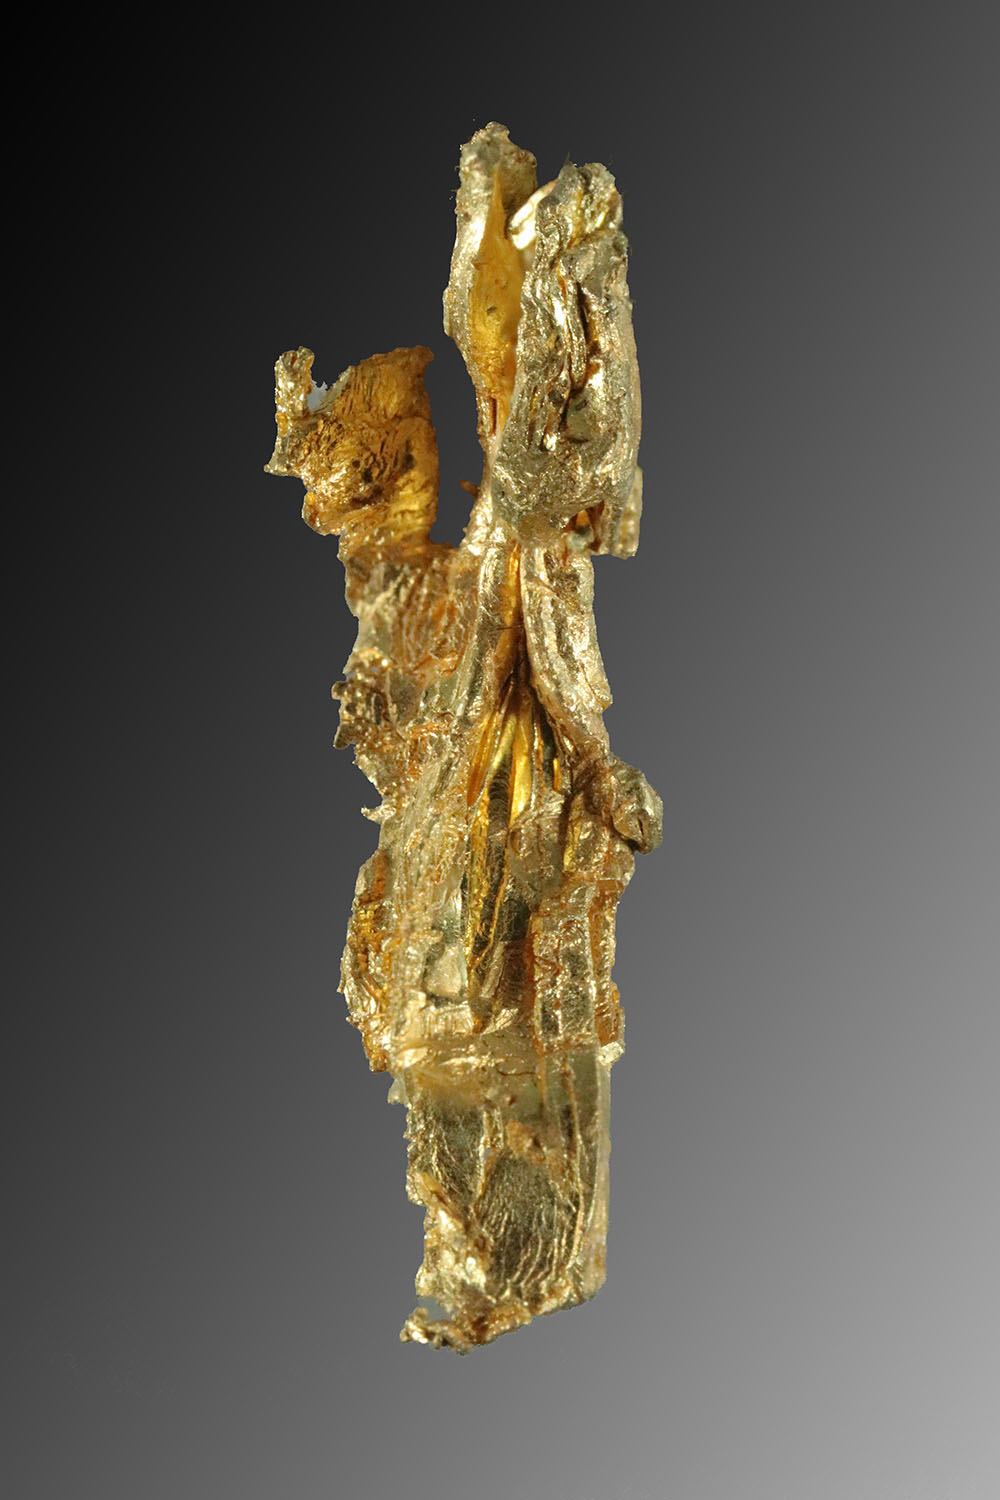 Natural Long and Curved Gold Specimen from Round Mountain